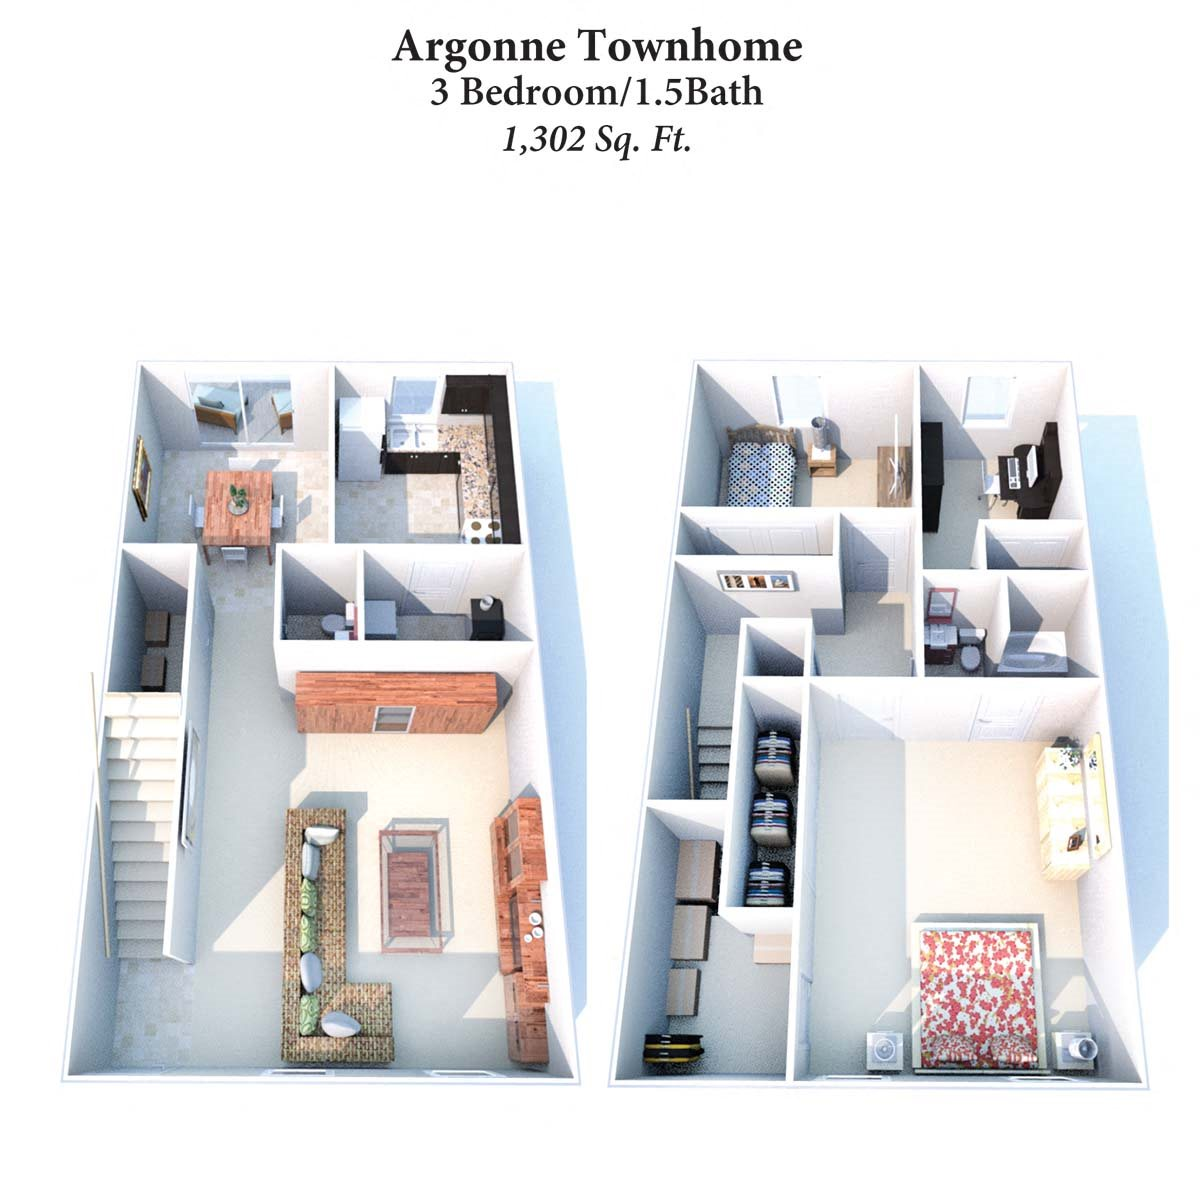 3B/1.5B Argonne Townhome 1,302SqFt Floor Plan 11